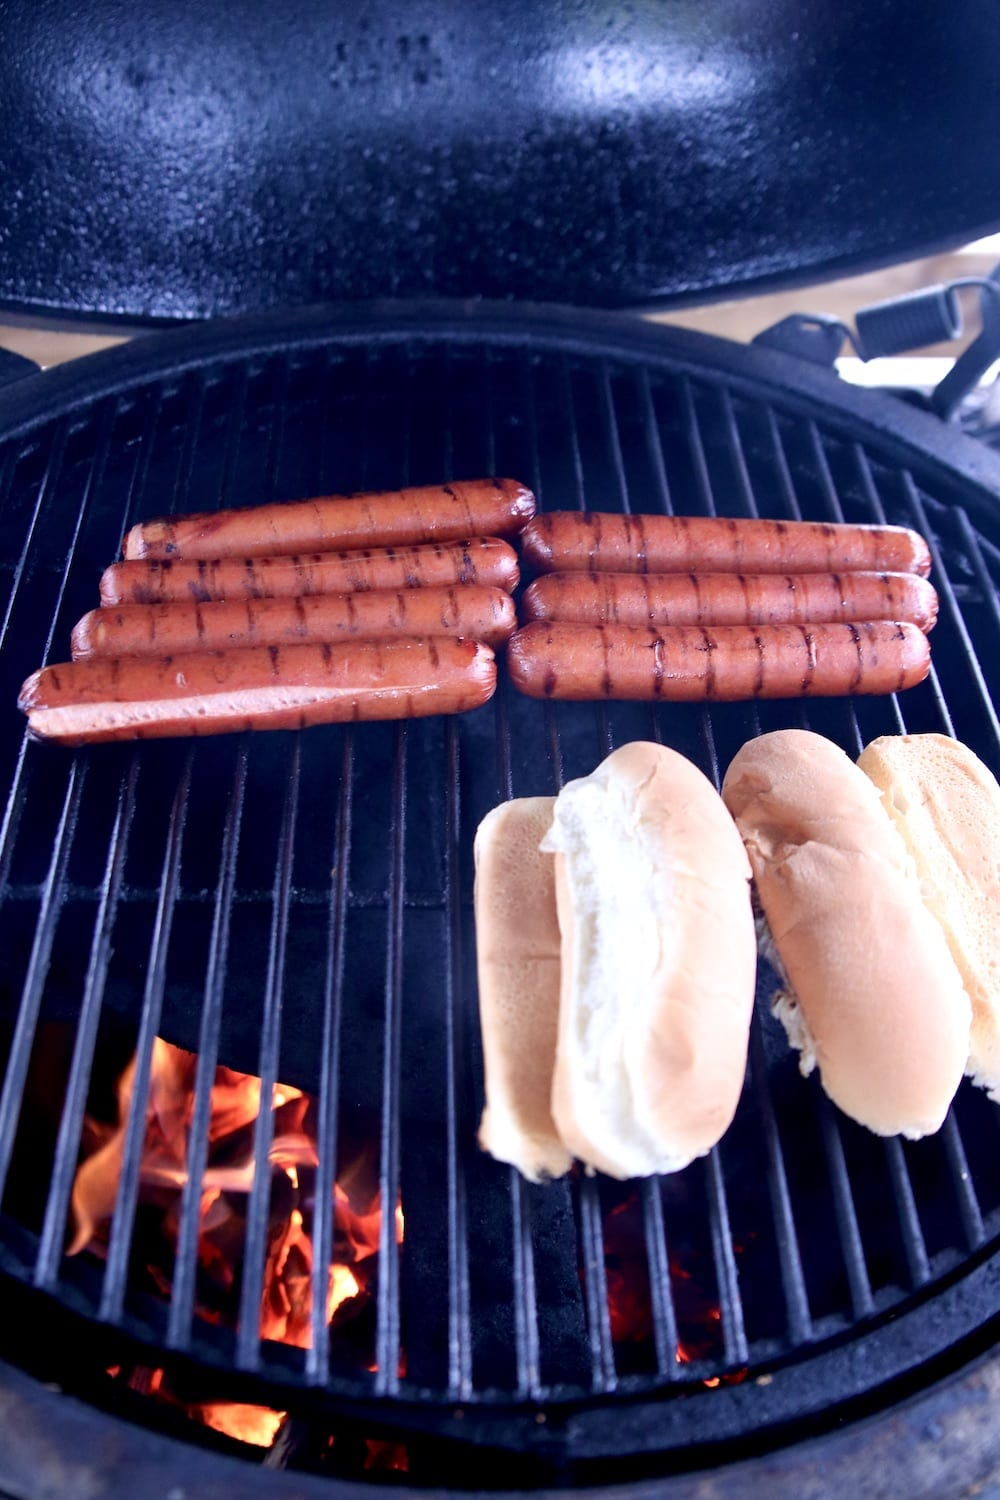 Grilling hot dogs and buns